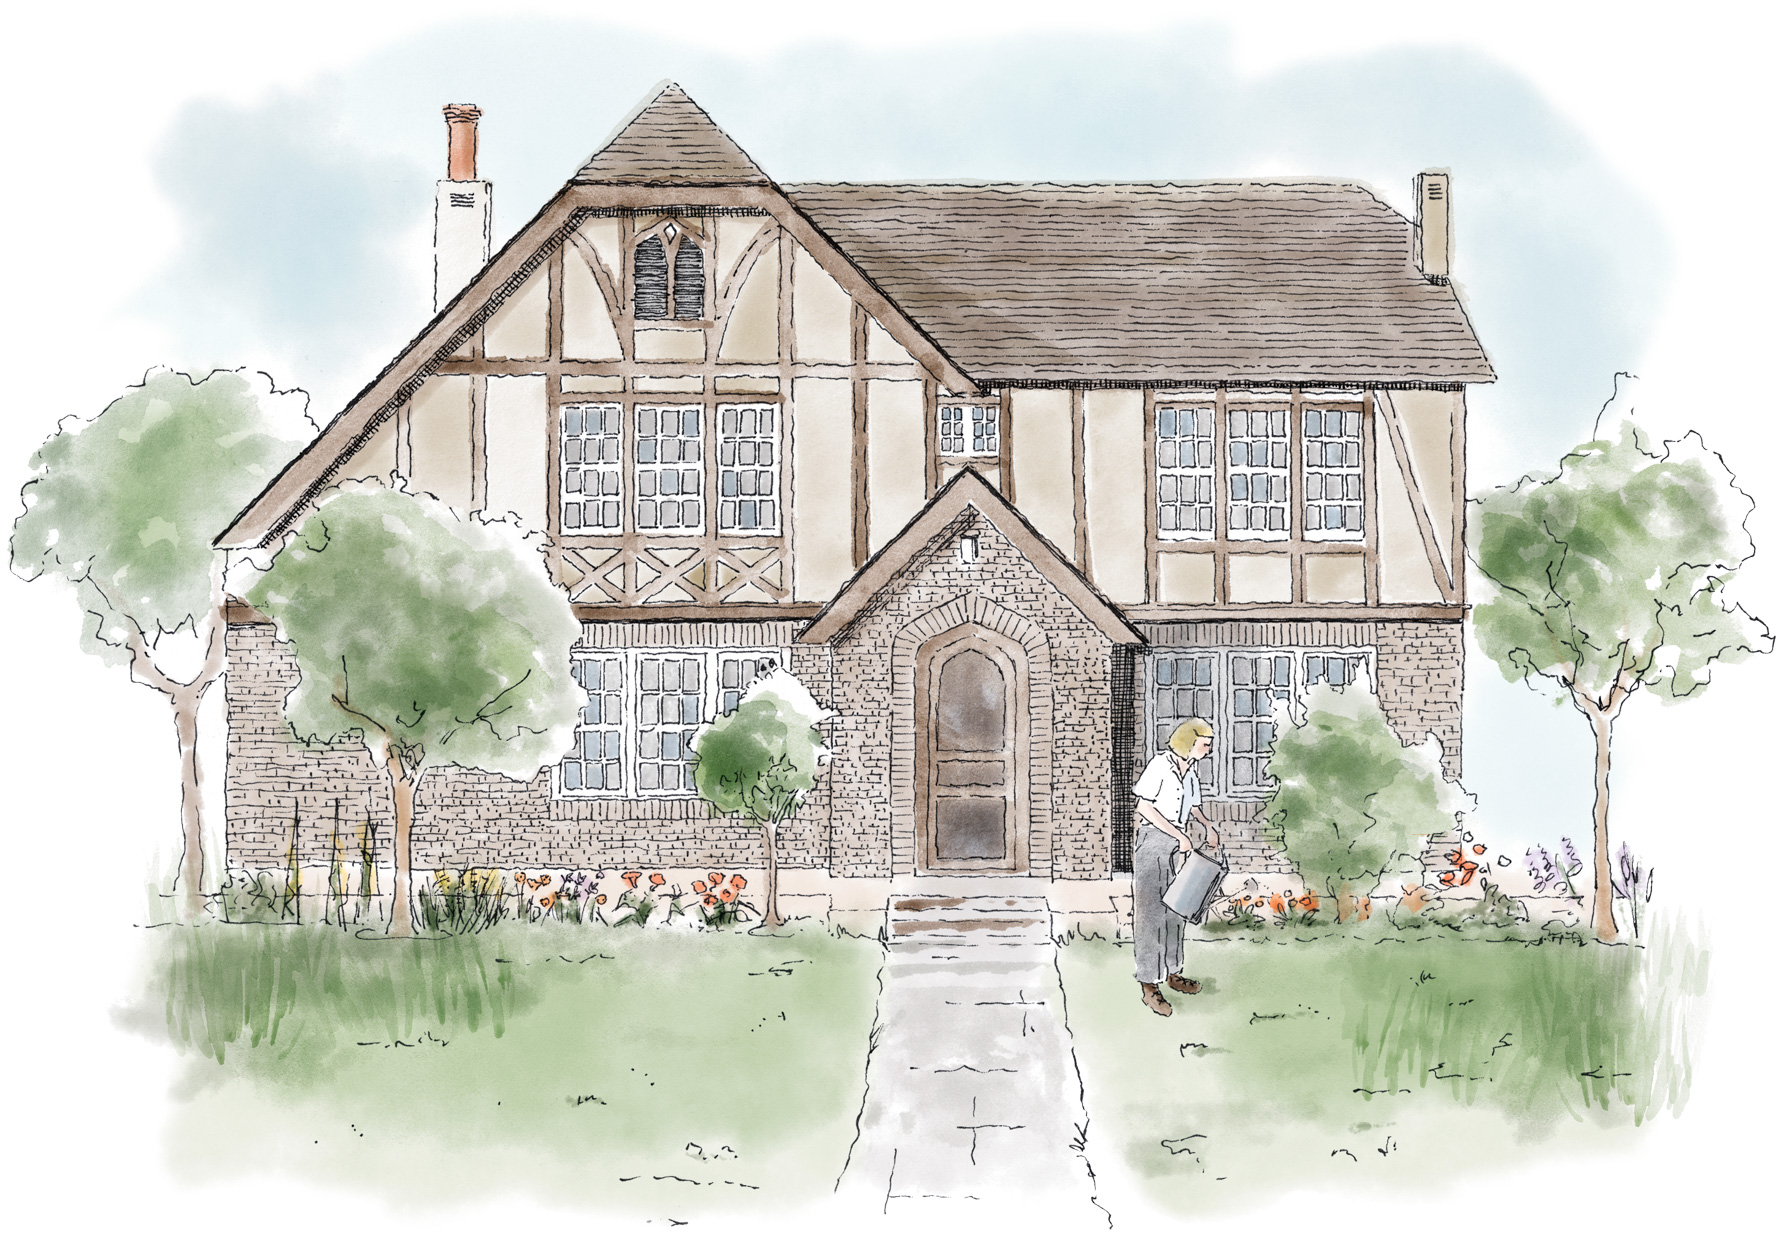 Willa Cather home illustration